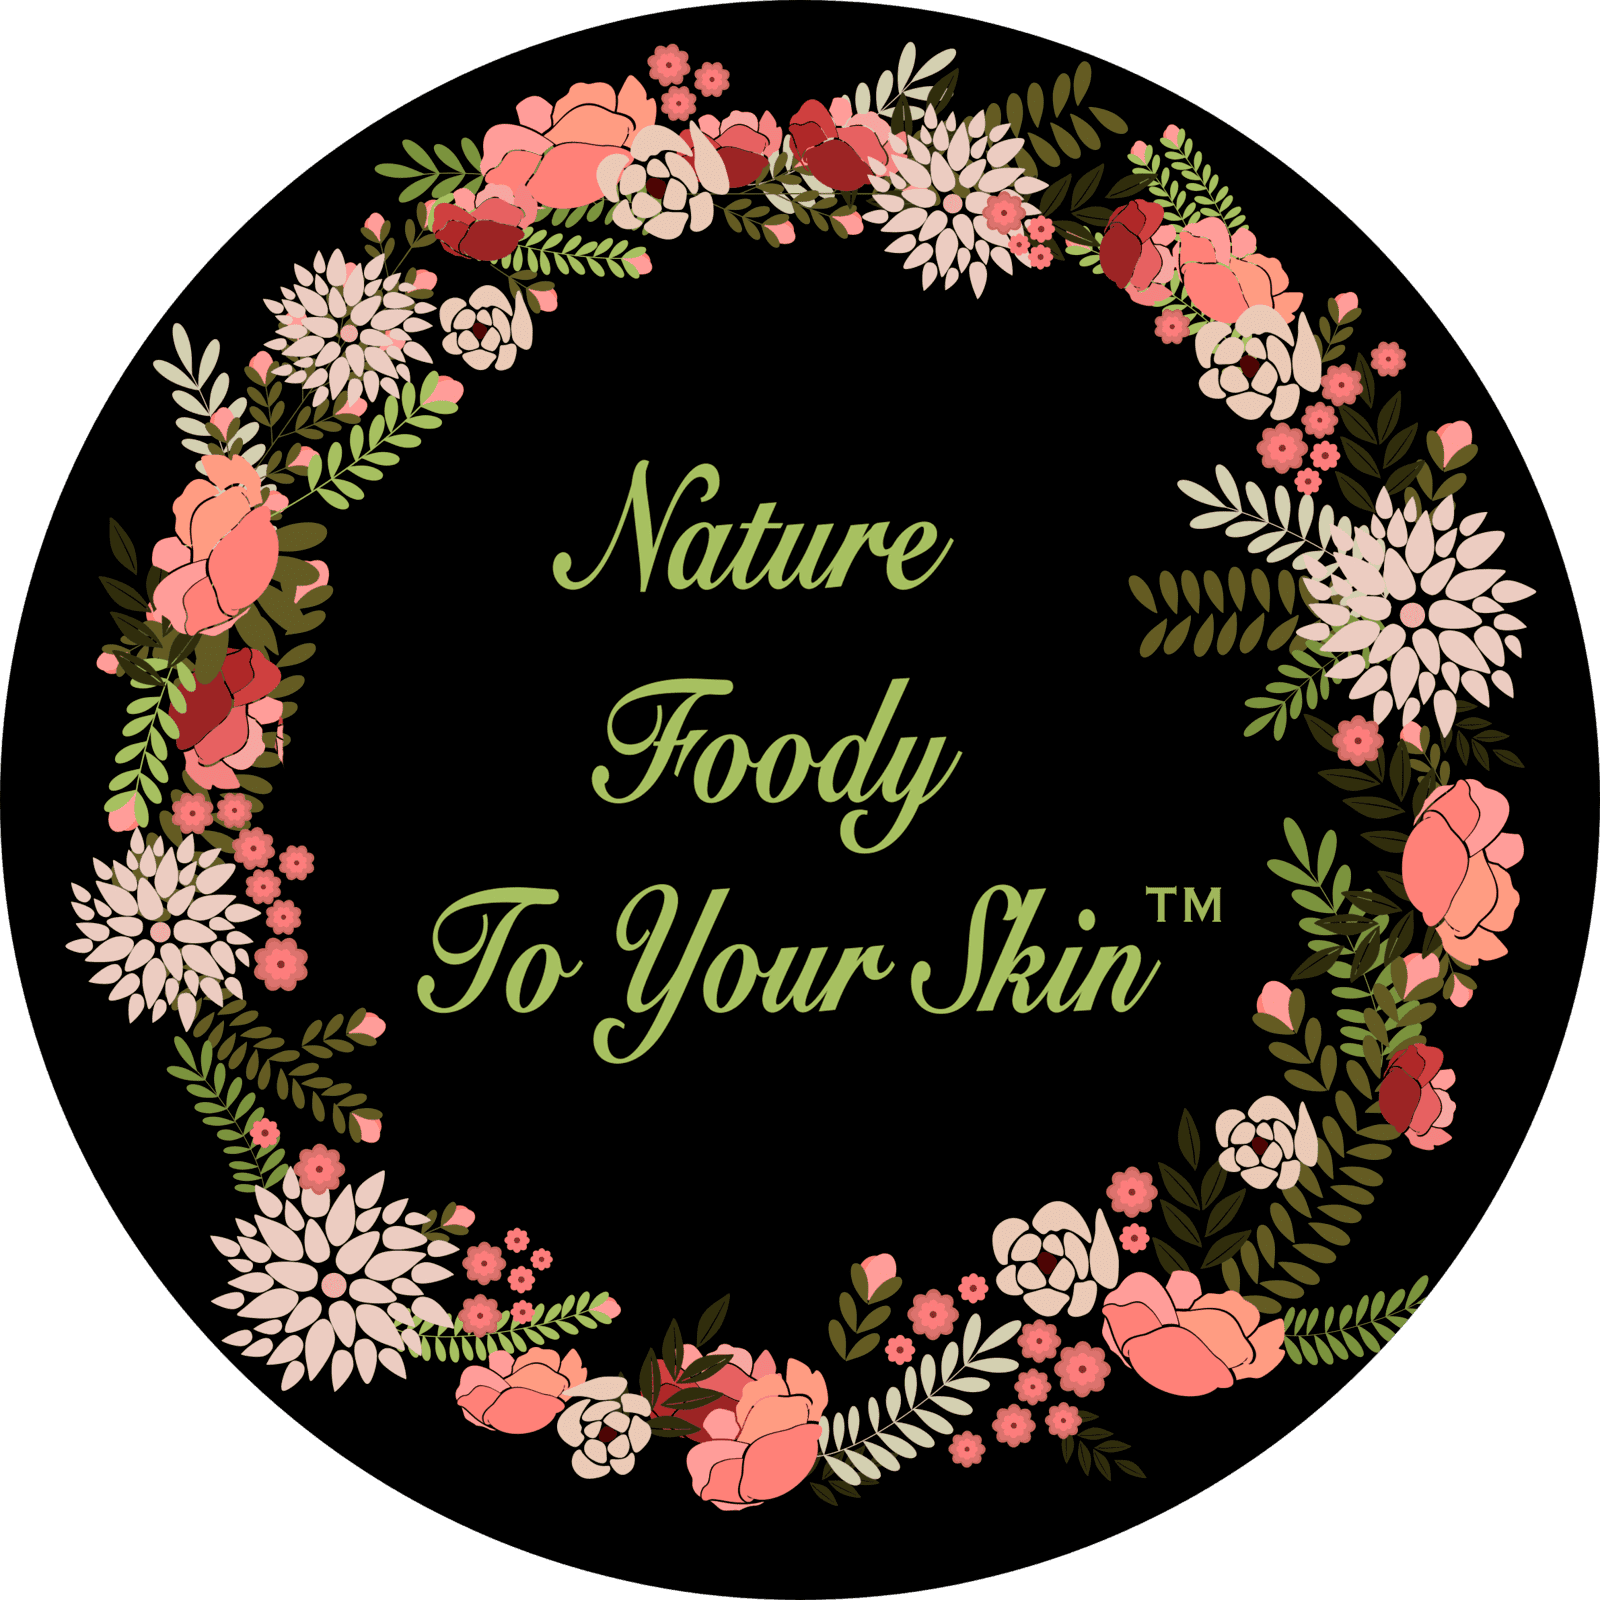 Nature foody to your skin